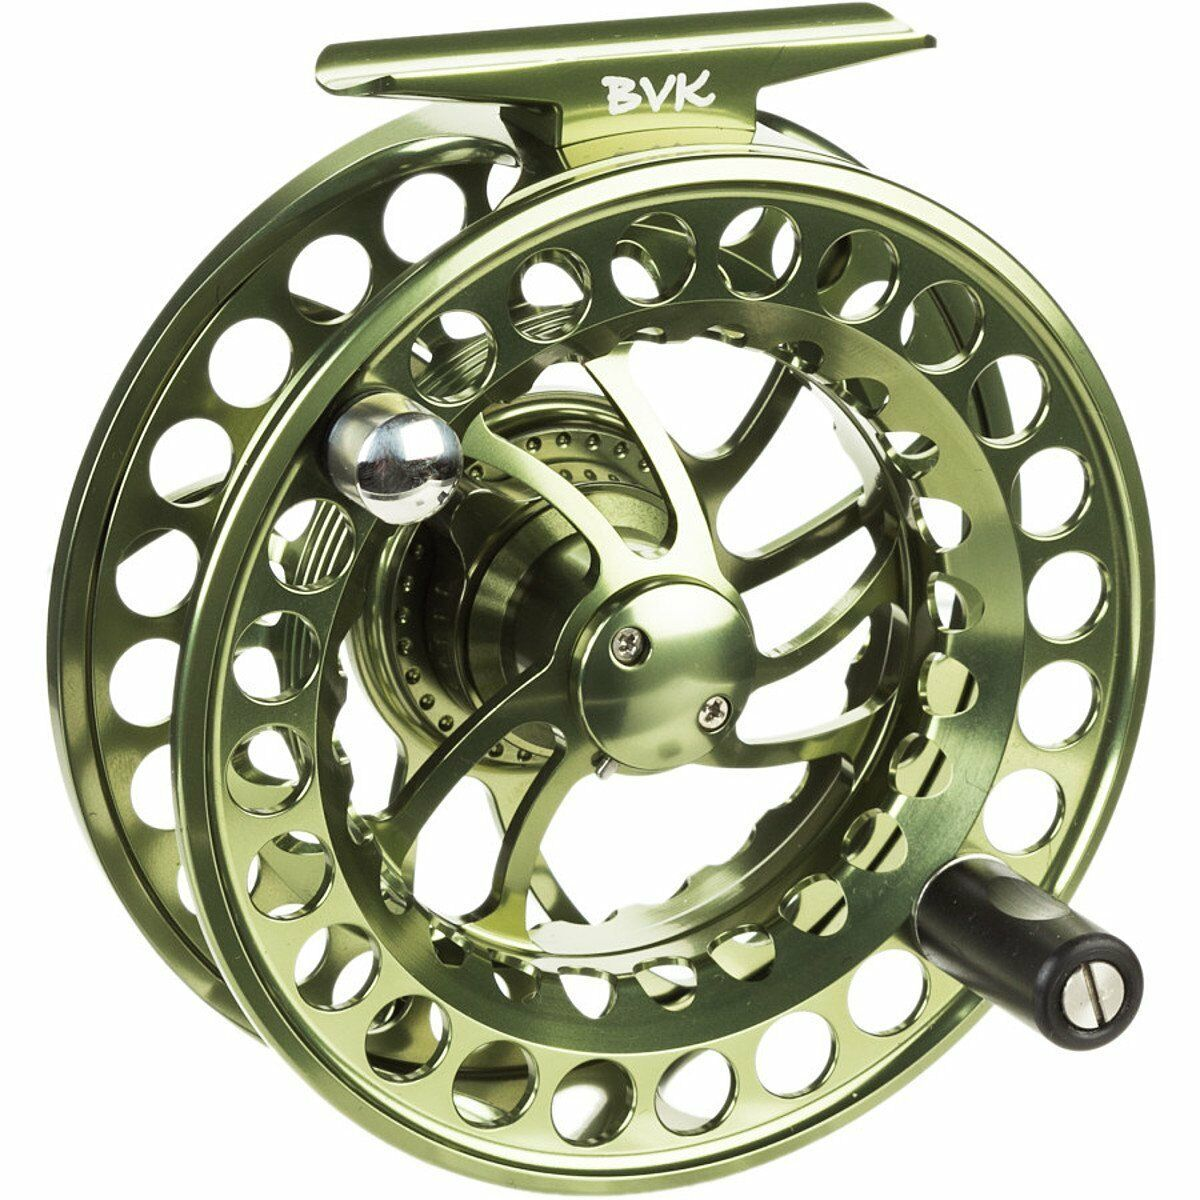 NEW TFO TEMPLE FORK OUTFITTERS BVK 3 FLY FISHING REEL FOR 91011 WEIGHT ROD